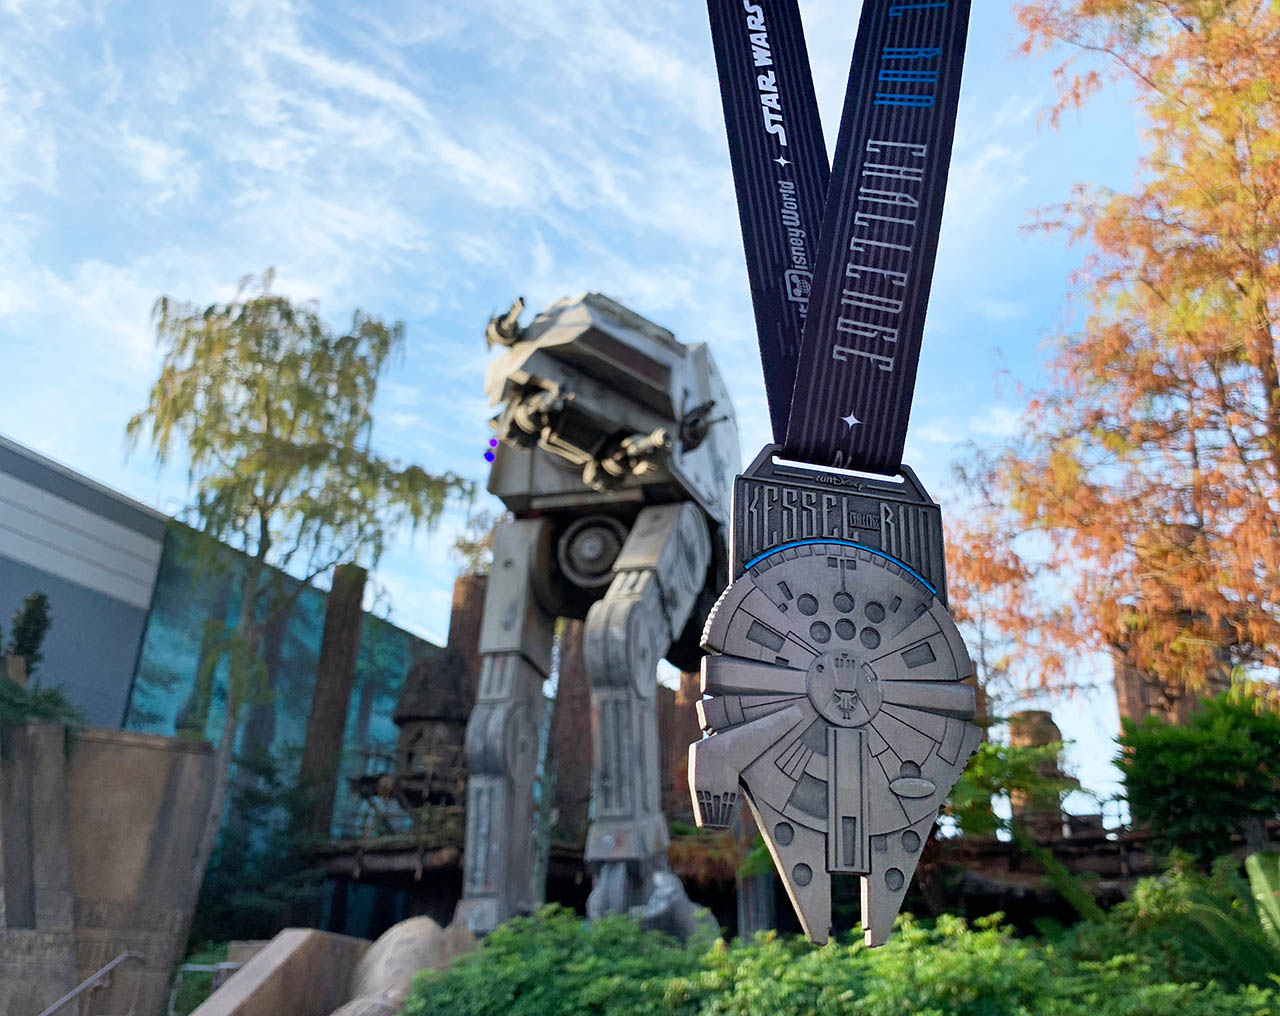 runDisney medal for the Kessel Run Challenge